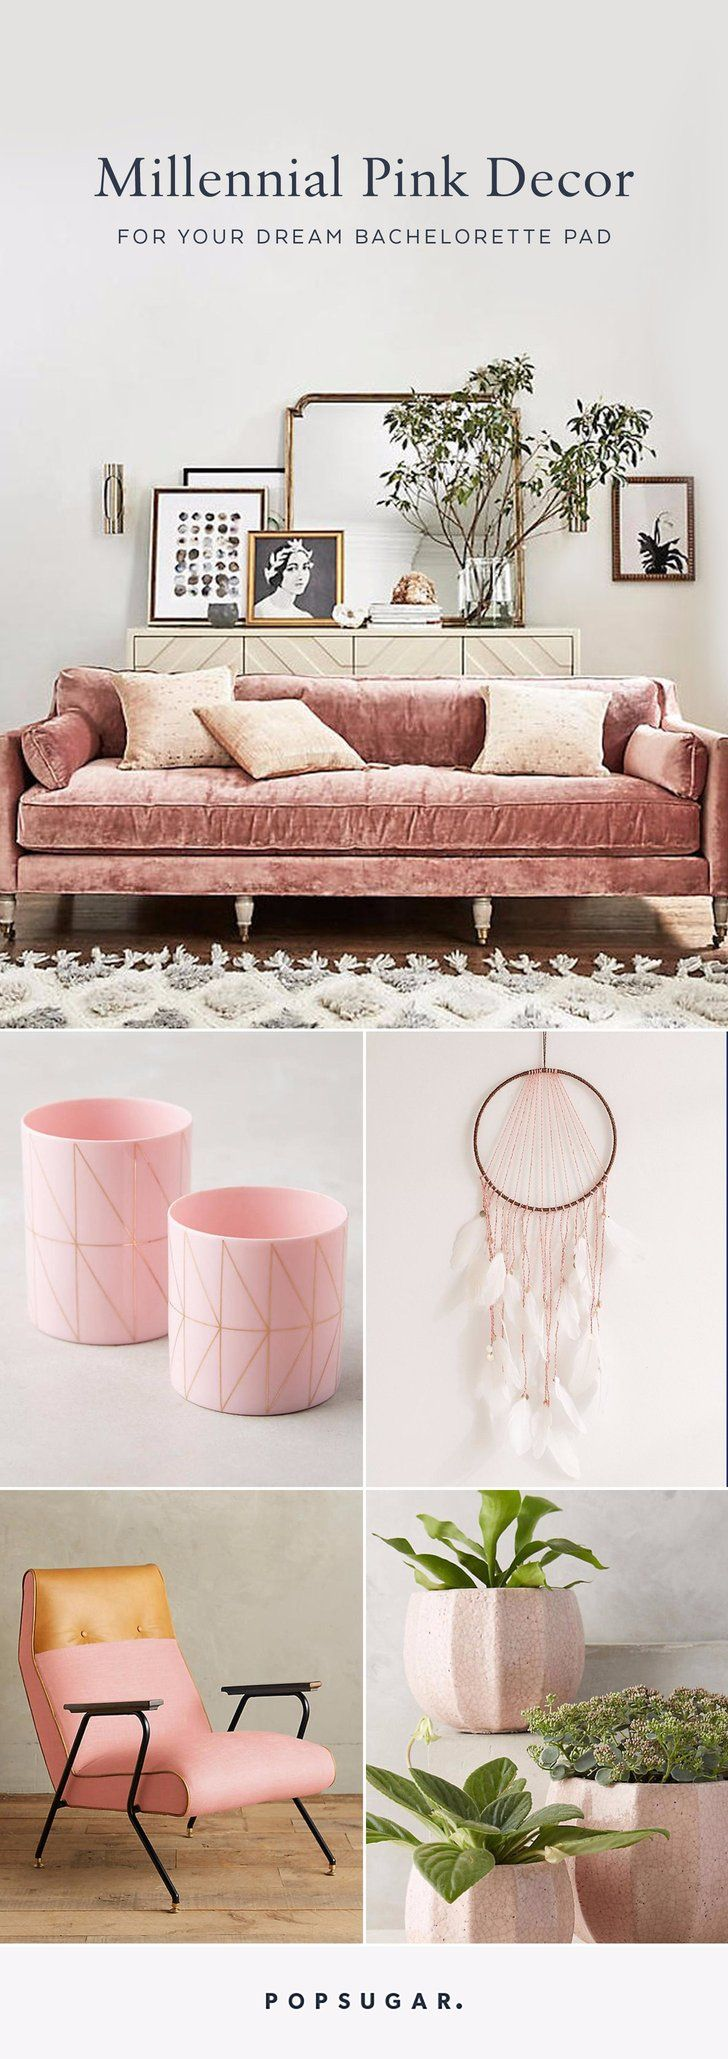 18 Millennial Pink Decor Items For Your Dream Bachelorette Pad